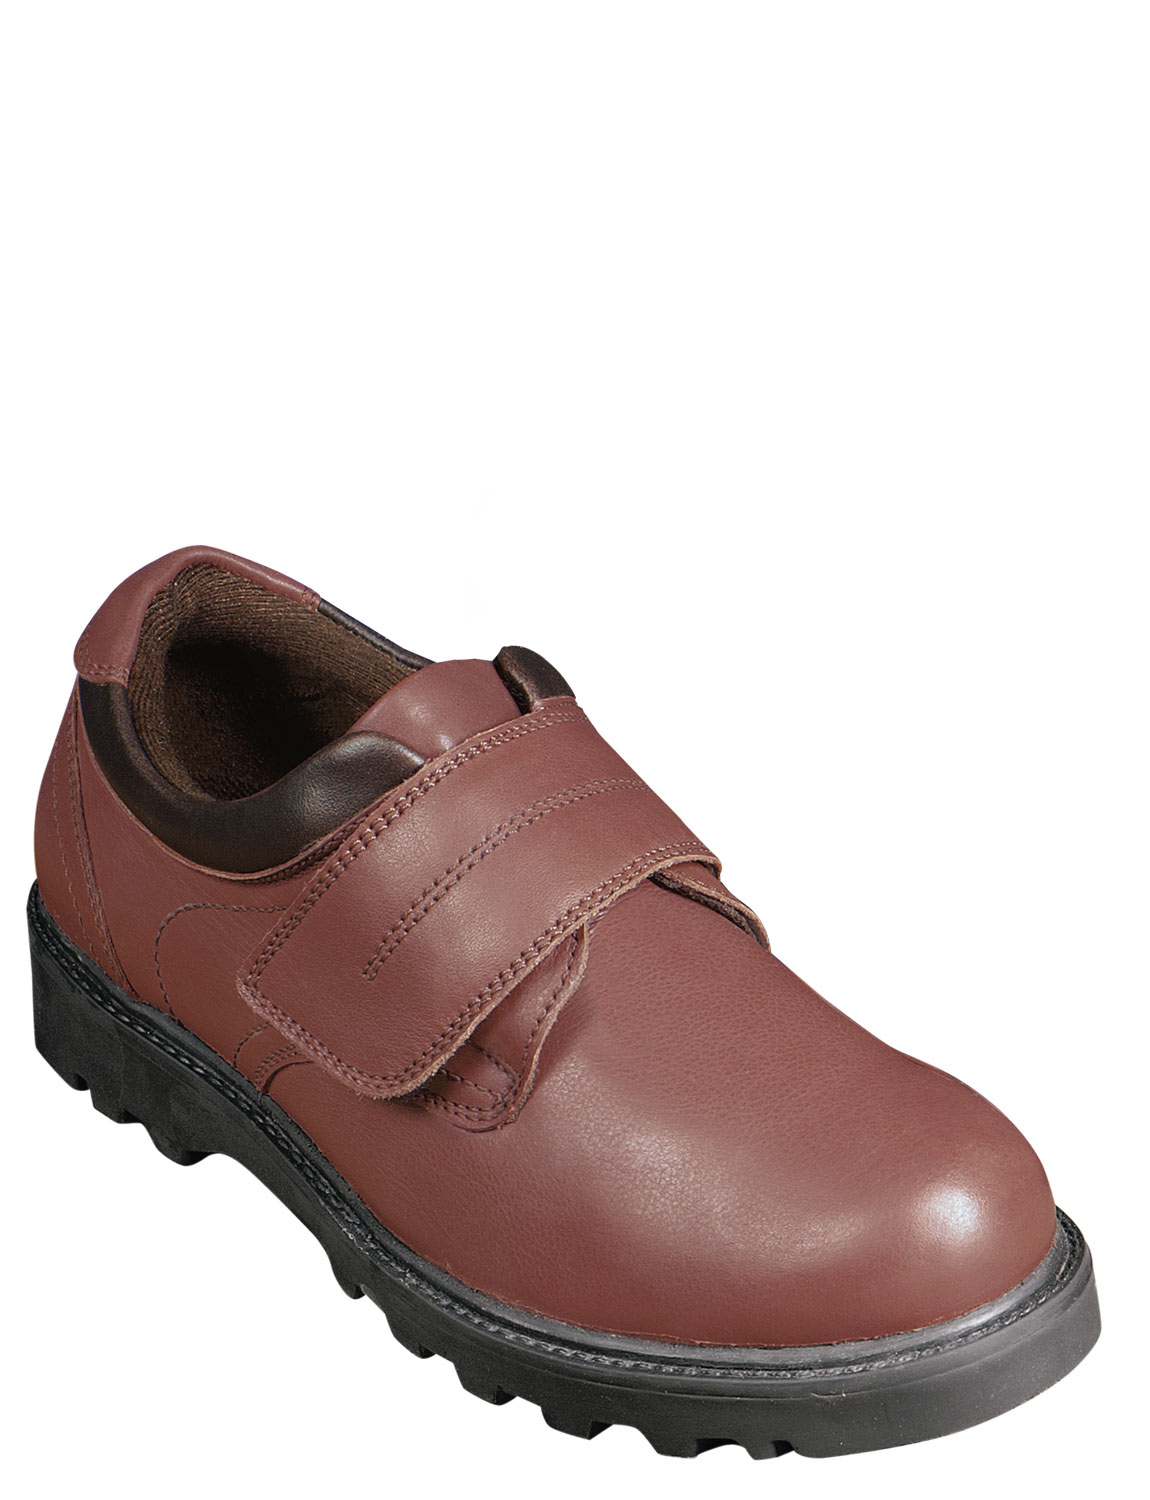 mens real leather touch fastening walking shoe ebay